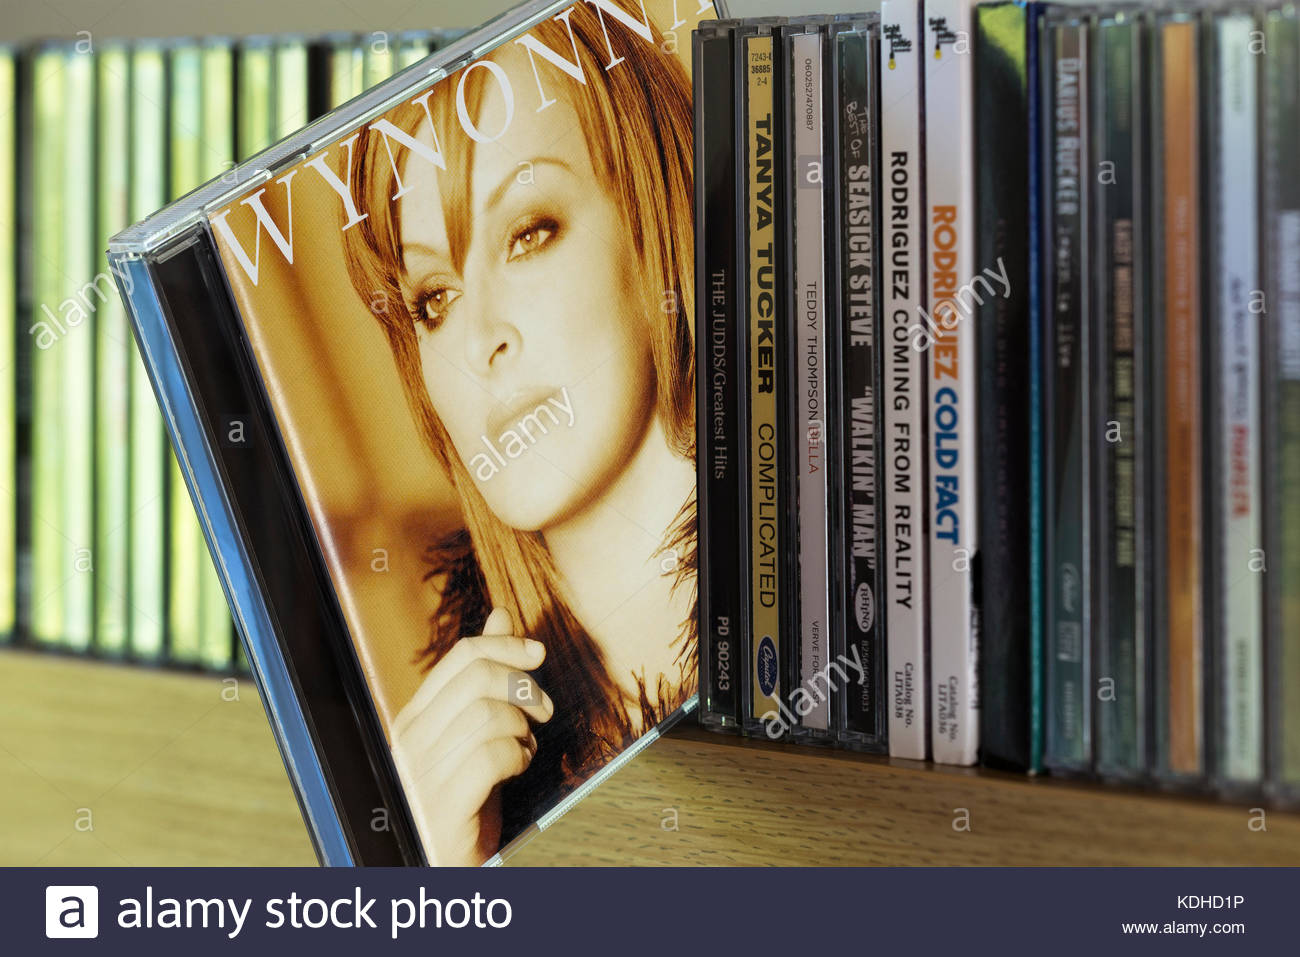 New Day Dawning, Wynonna Judd CD pulled out from among other CD's on a shelf, Dorset, England - Stock Image